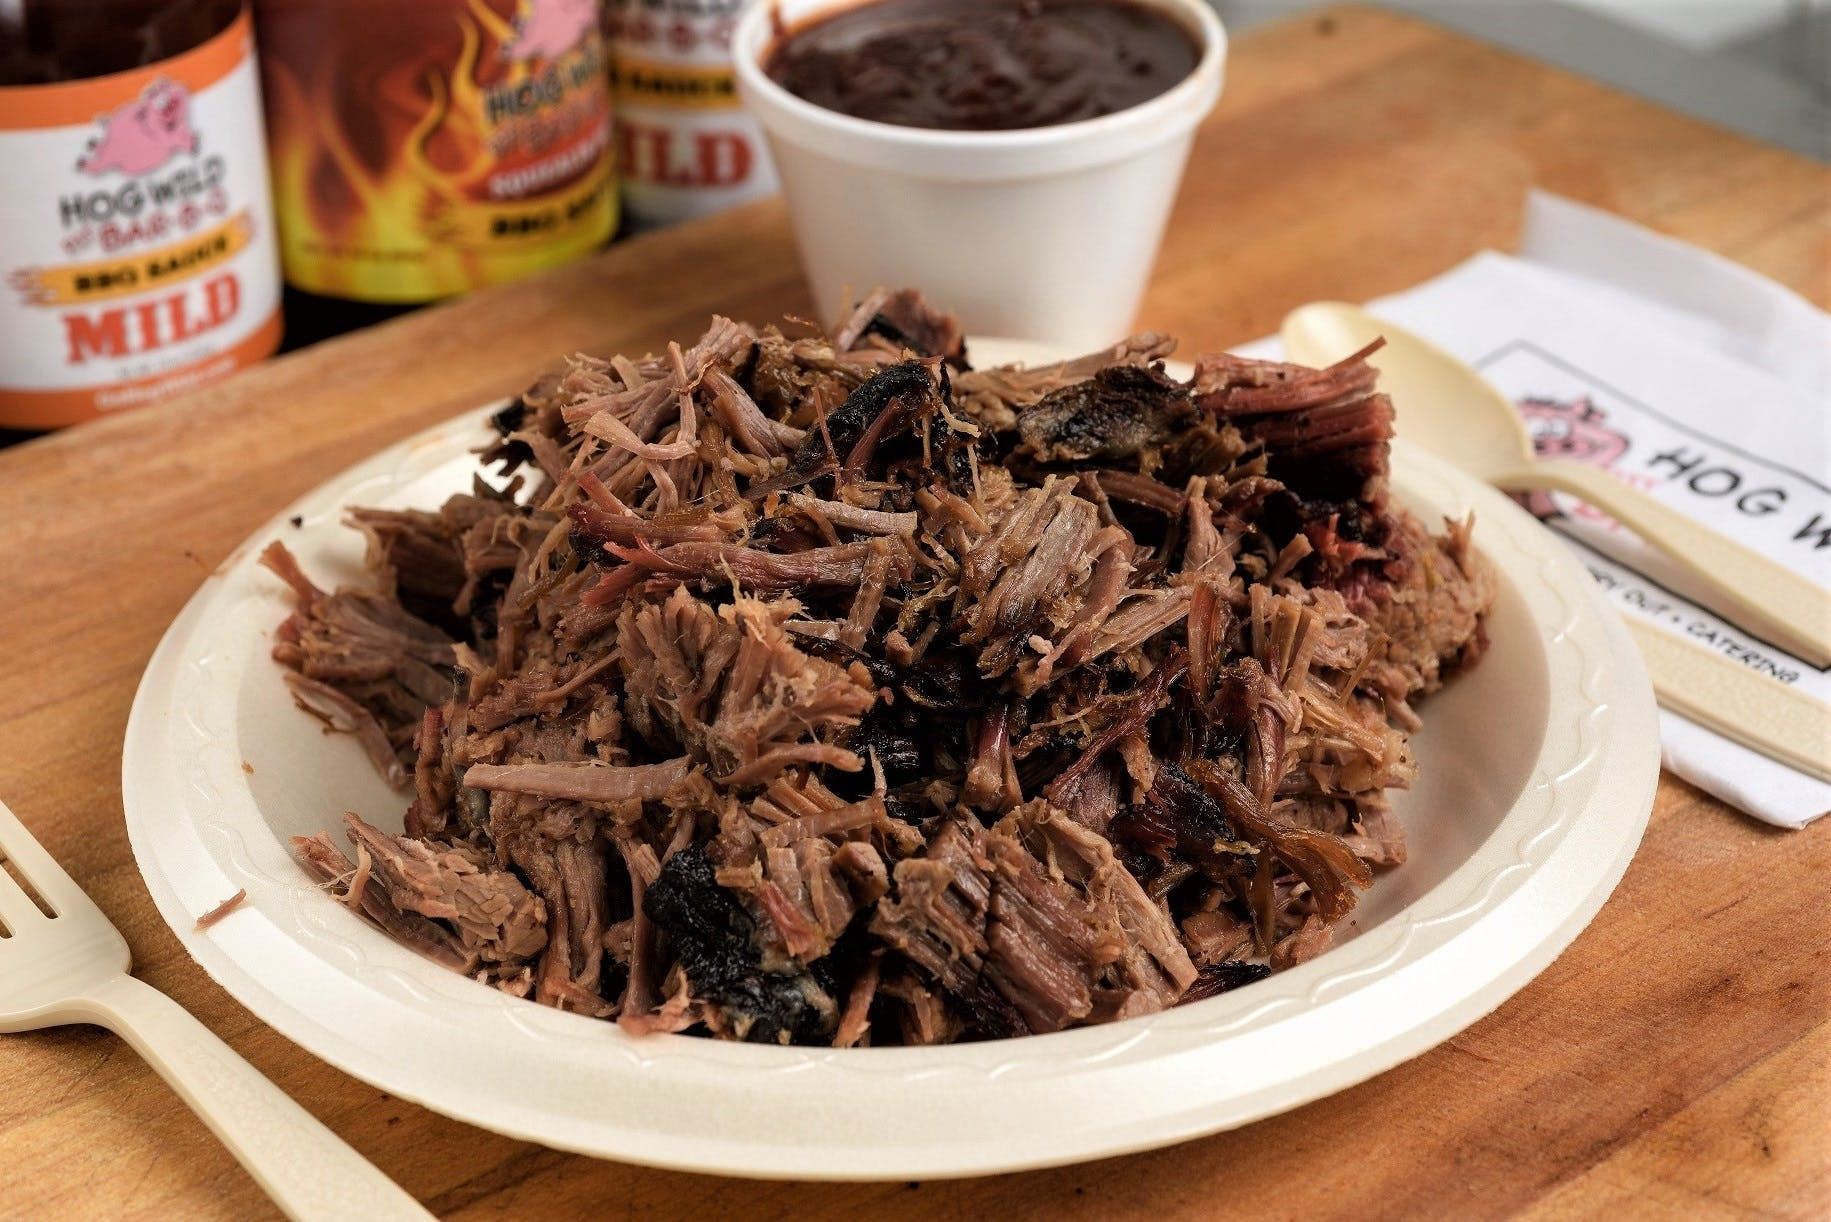 Beef Brisket from Hog Wild Pit BBQ & Catering in Lawrence, KS